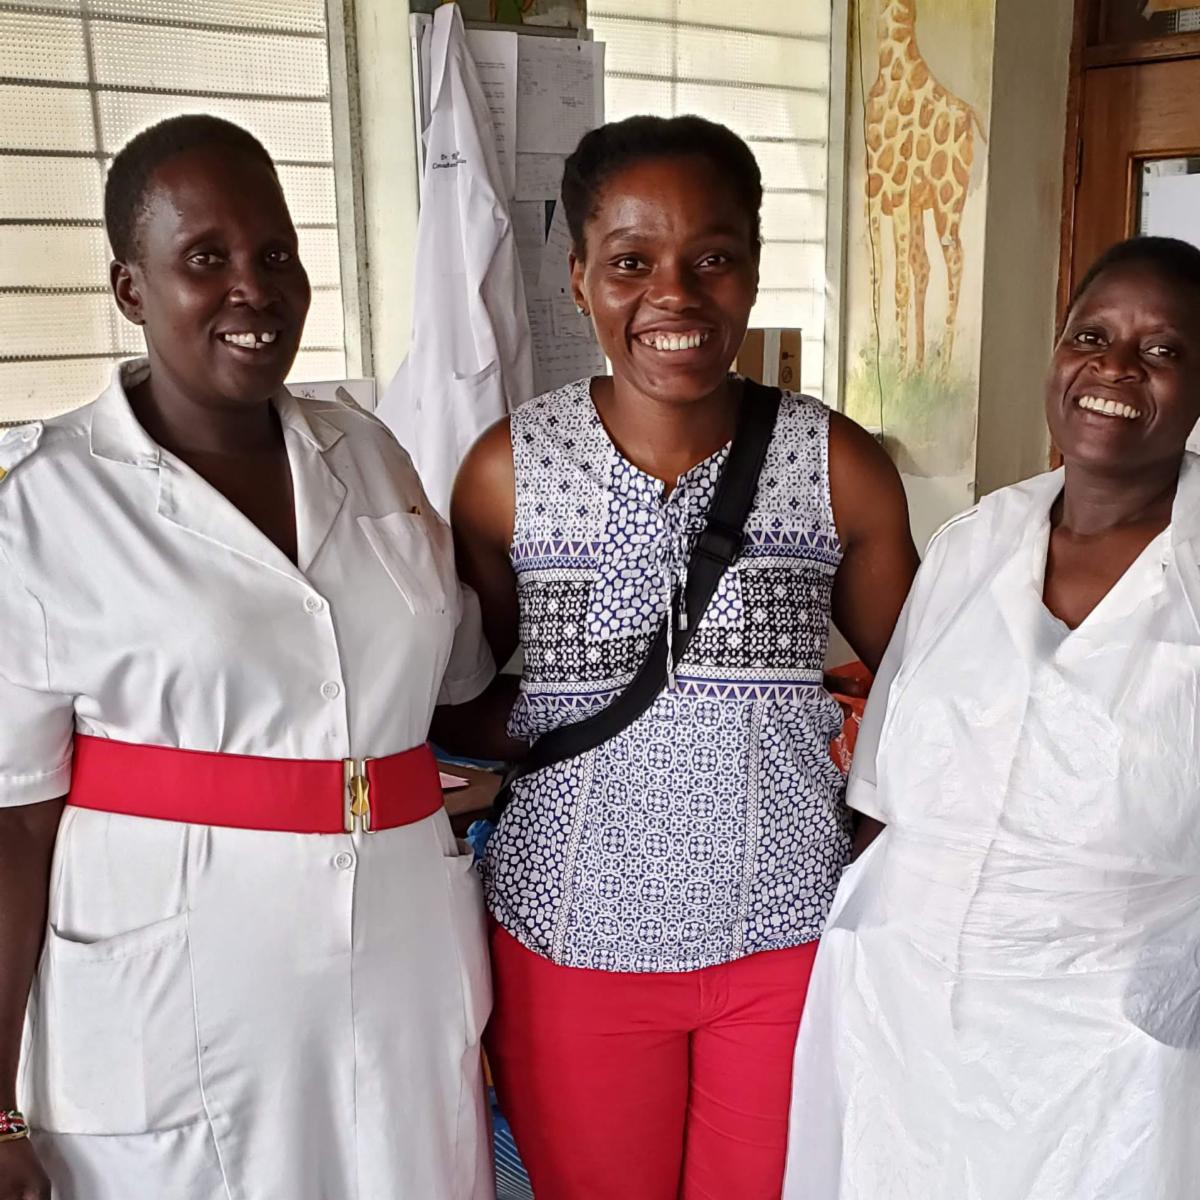 Pediatrics nurses with HVO volunteer in Uganda